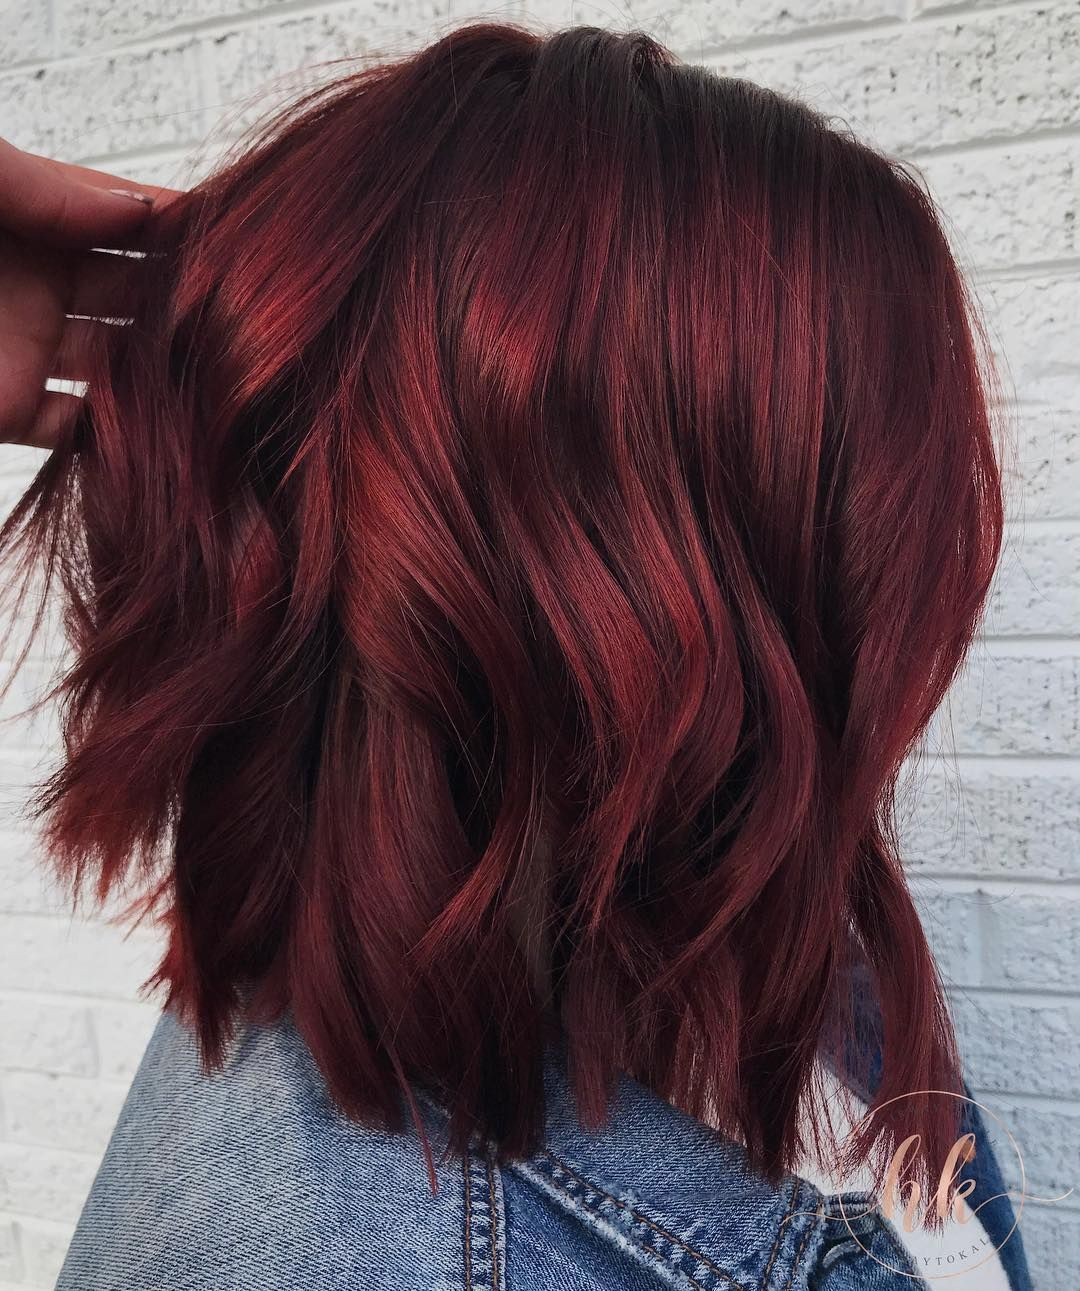 Mulled wine hairud is the new delicious winter hair trend to try in